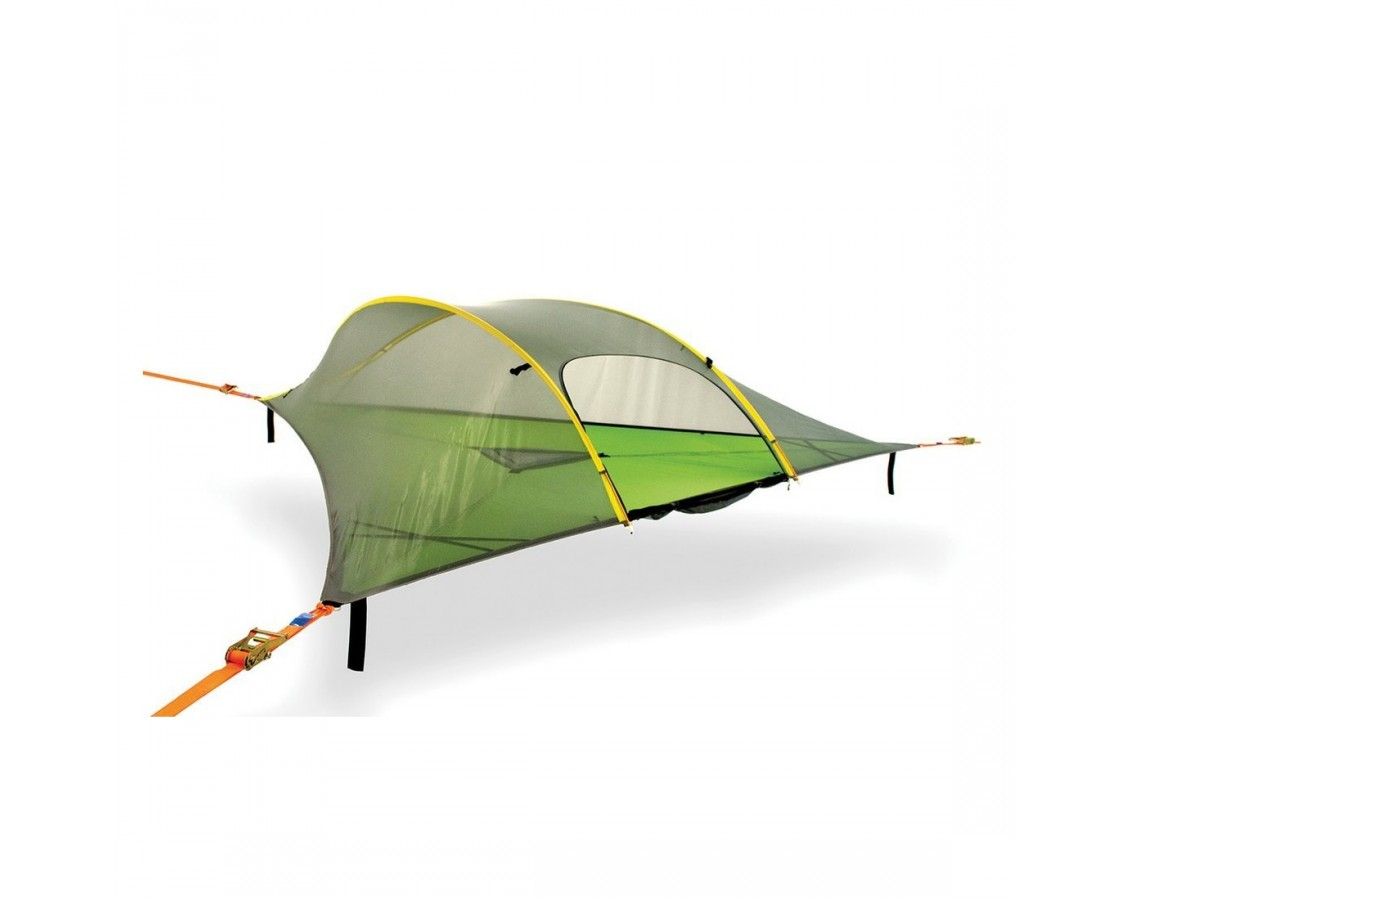 The Tentsile Stingray offers reinforced metal to protect the camper and tent form wear and tear.